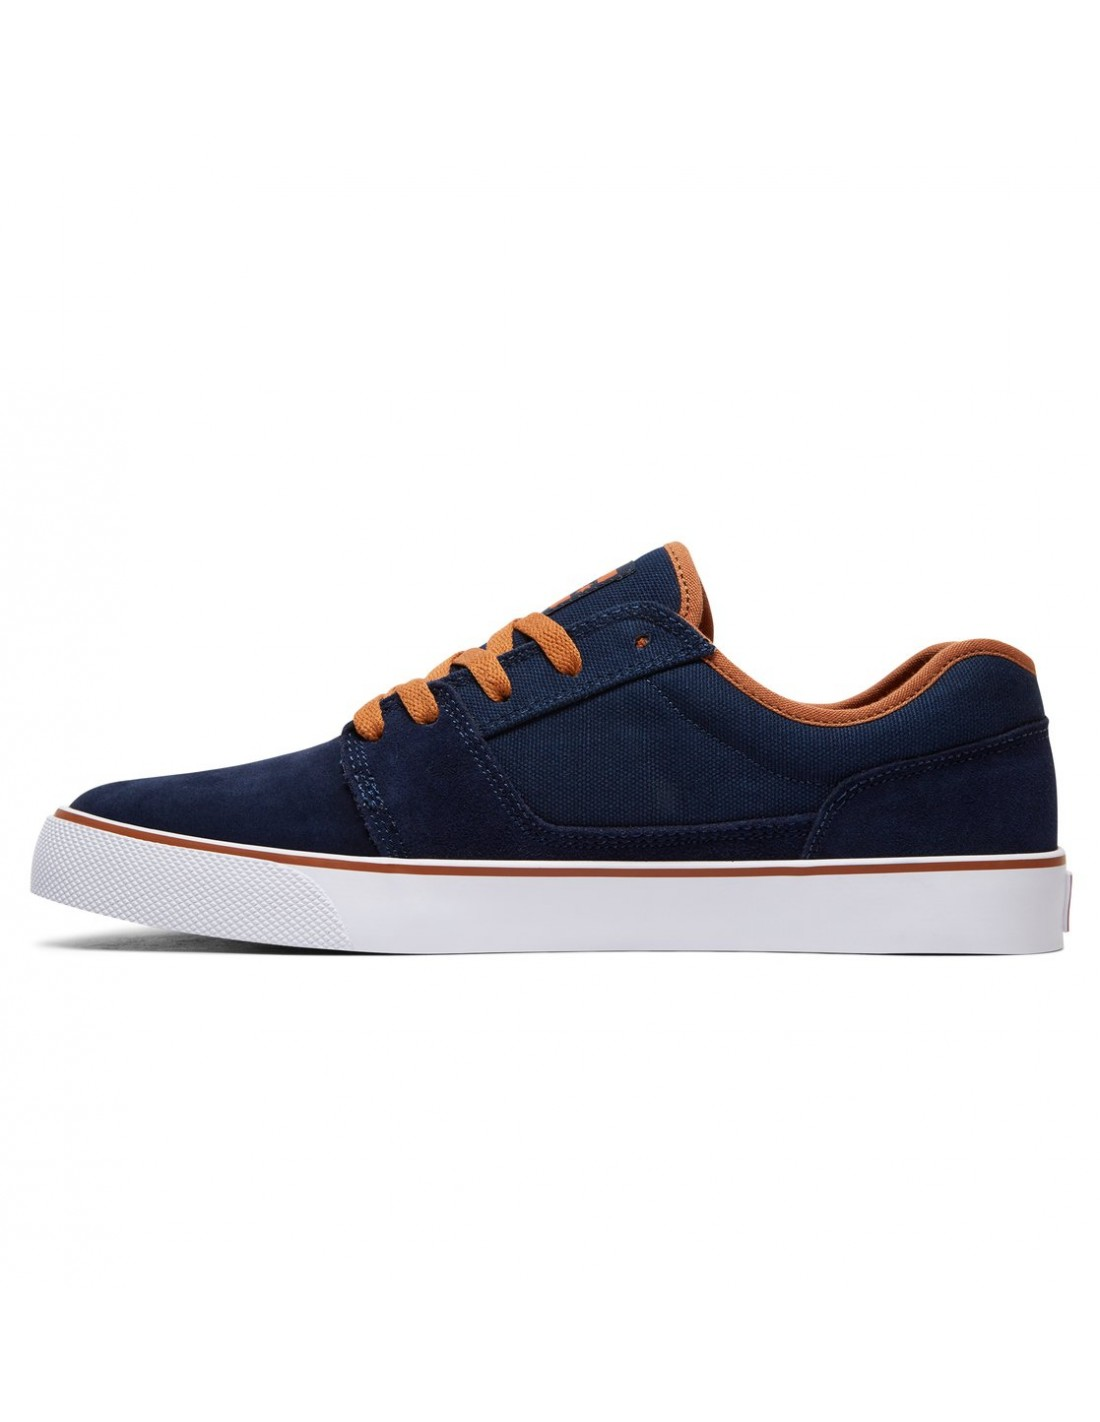 Chaussures DC Tonik Navy Bright Blue Nvb W4dFpGpP3